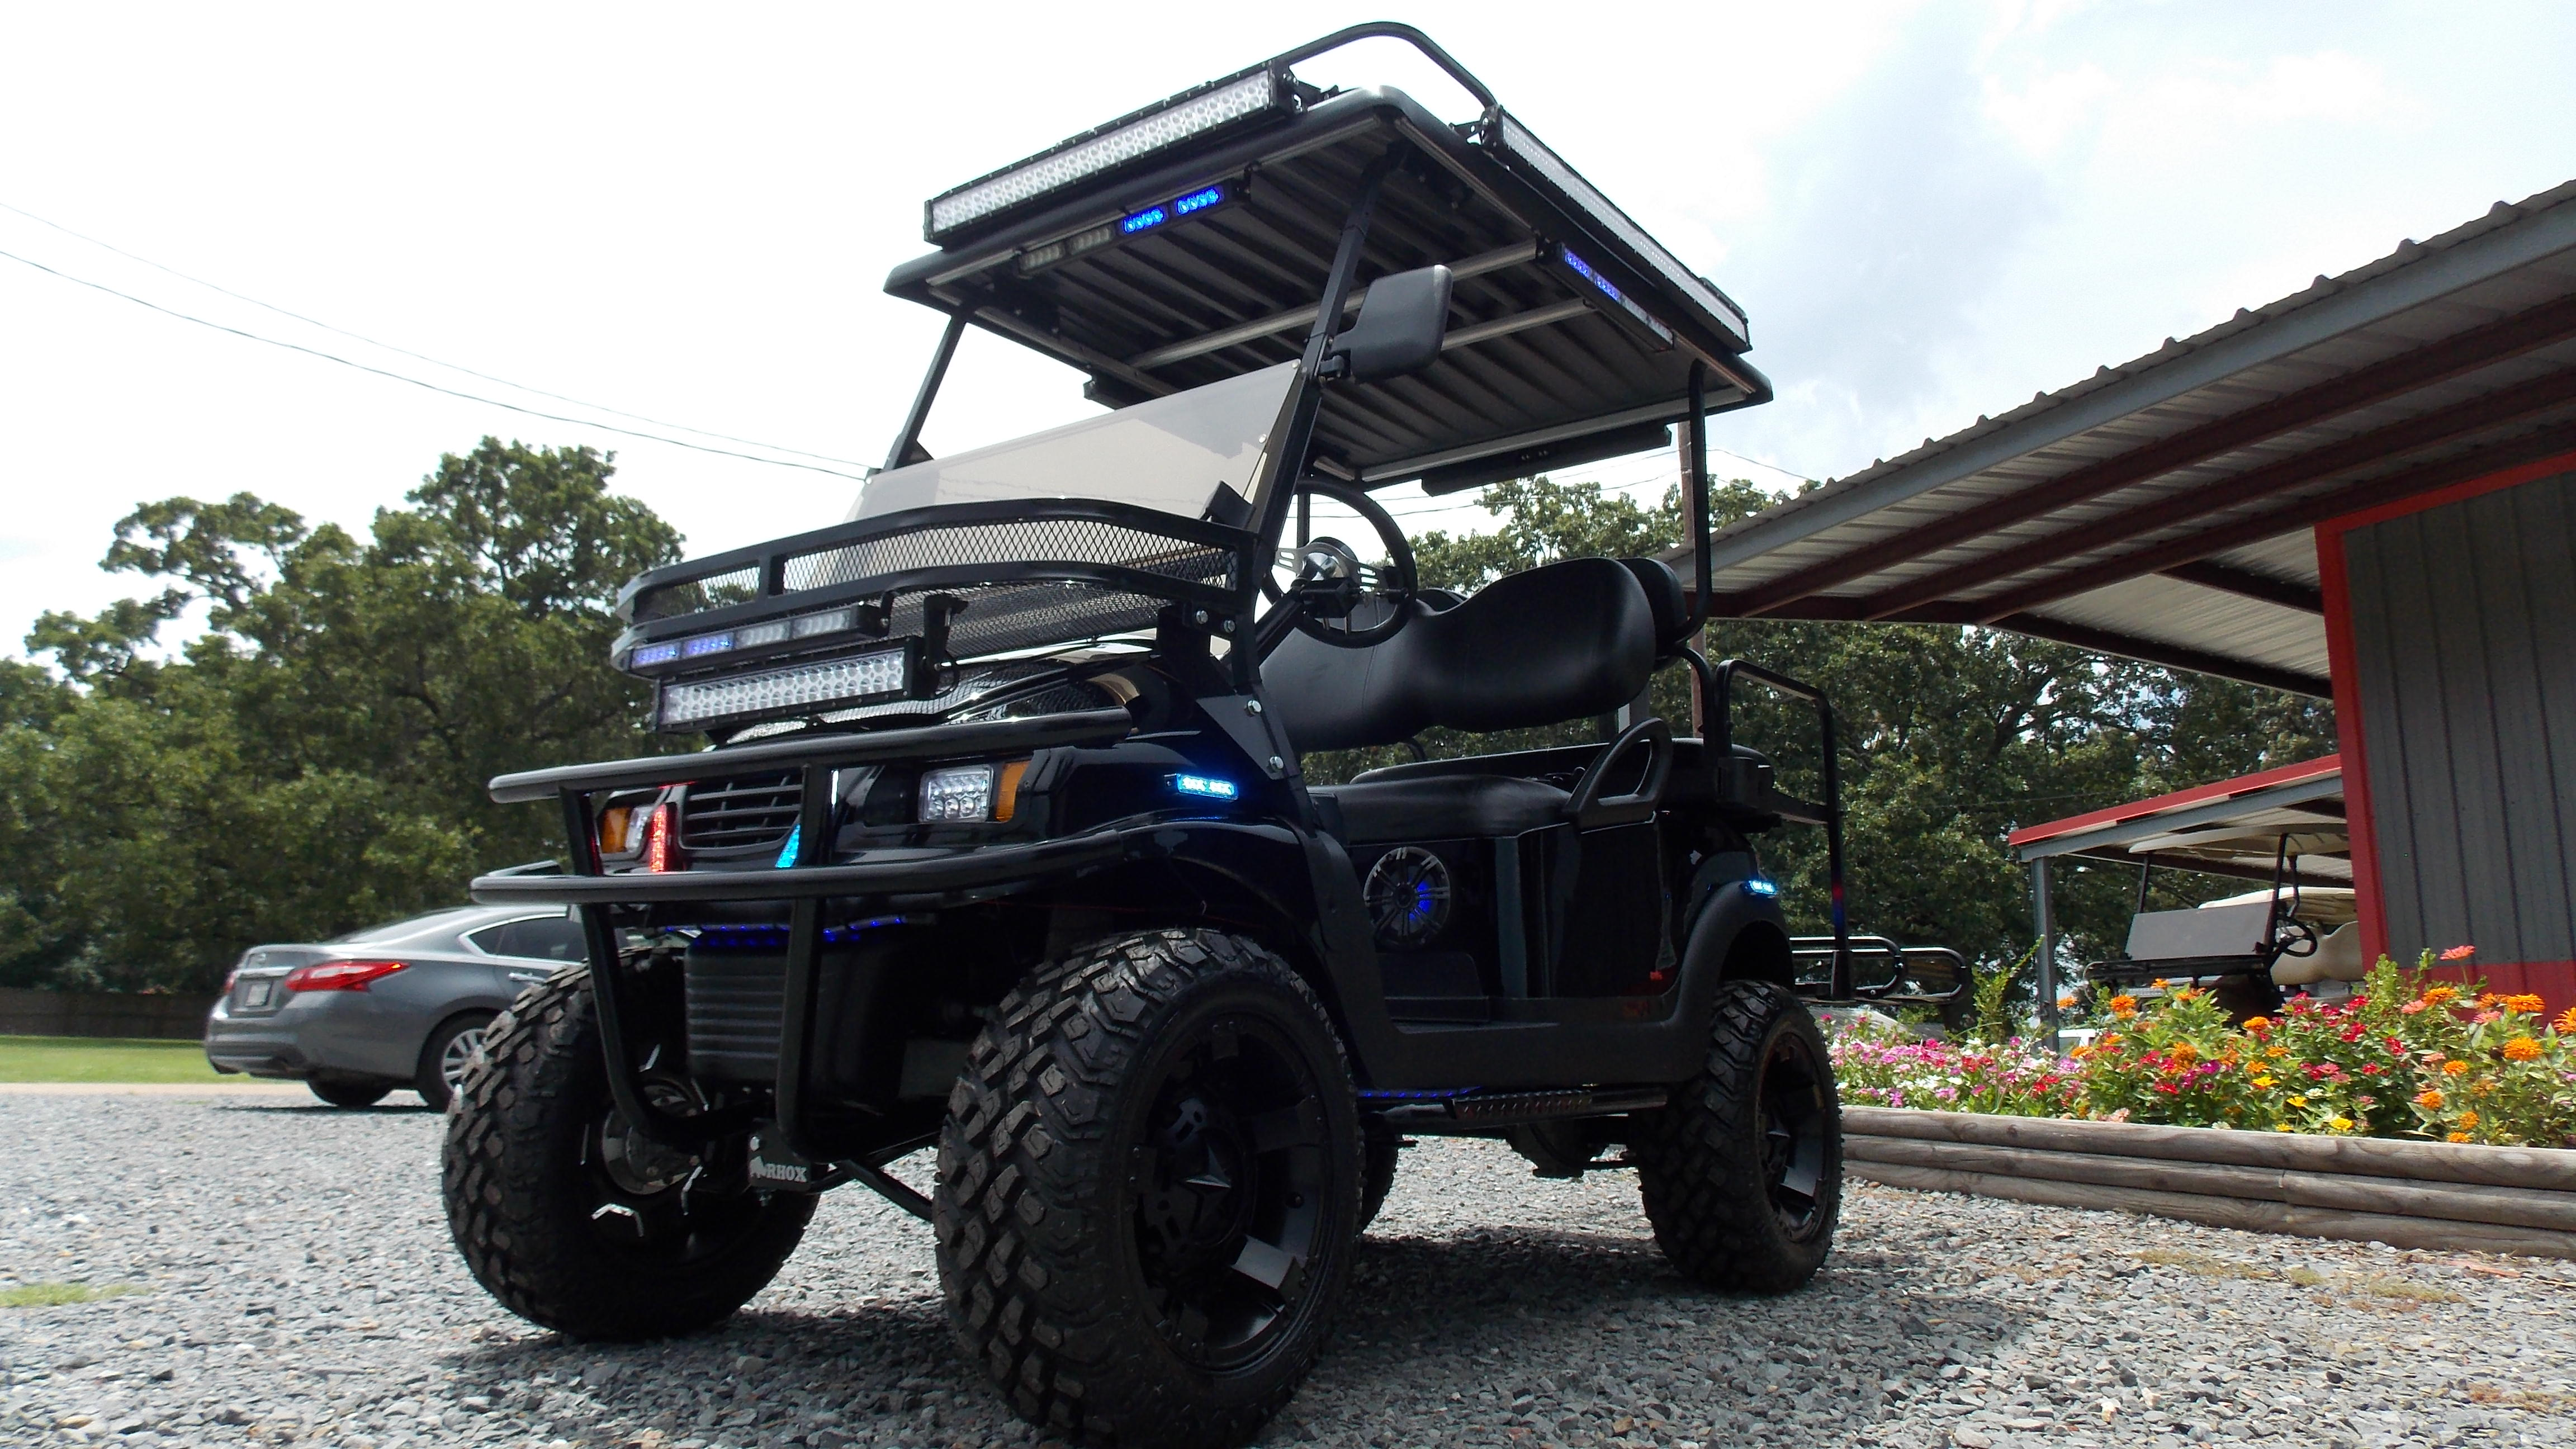 Prowl Edition Police Tatical Security Electric LSV Golf Cart on ezgo golf carts, concept golf carts, fancy golf carts, maintaining golf carts, smiths golf carts, turbo golf carts, star golf carts, new street legal golf carts, used golf carts, street-legal gas golf carts, lsu golf carts, lit golf carts, custom golf carts, extreme golf carts, utv golf carts, gem golf carts, yamaha golf carts, bubble golf carts, nev golf carts, electric golf carts,